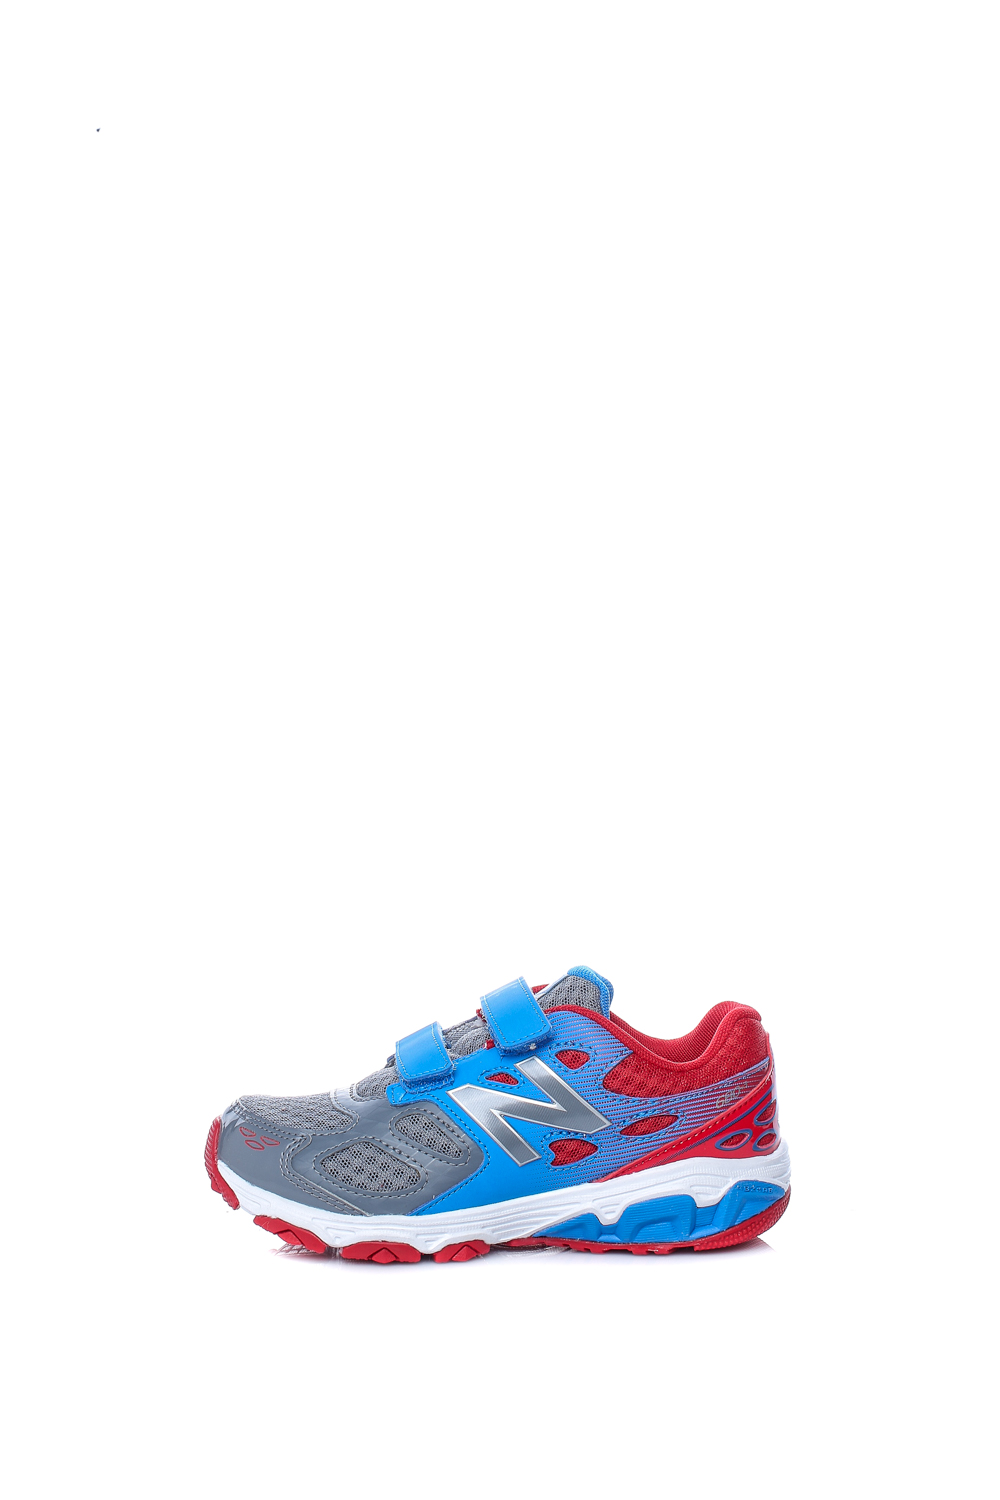 ab888293265 -50% Factory Outlet NEW BALANCE – Αθλητικά παπούτσια RUNNING YOUTH μπλε